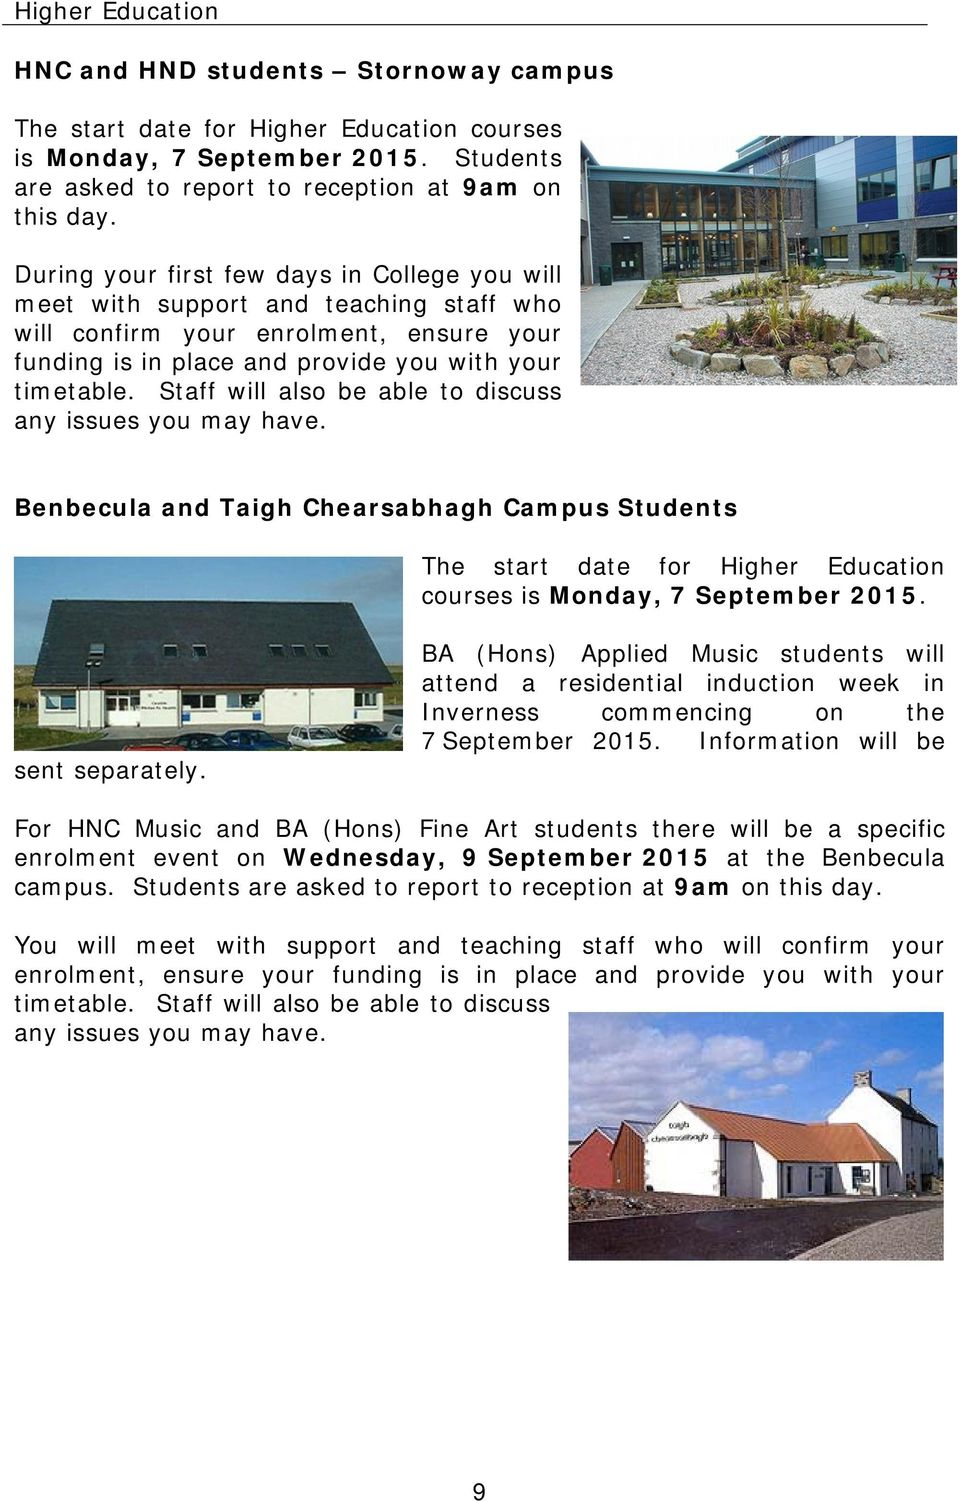 Staff will also be able to discuss any issues you may have. Benbecula and Taigh Chearsabhagh Campus Students The start date for Higher Education courses is Monday, 7 September 2015. sent separately.